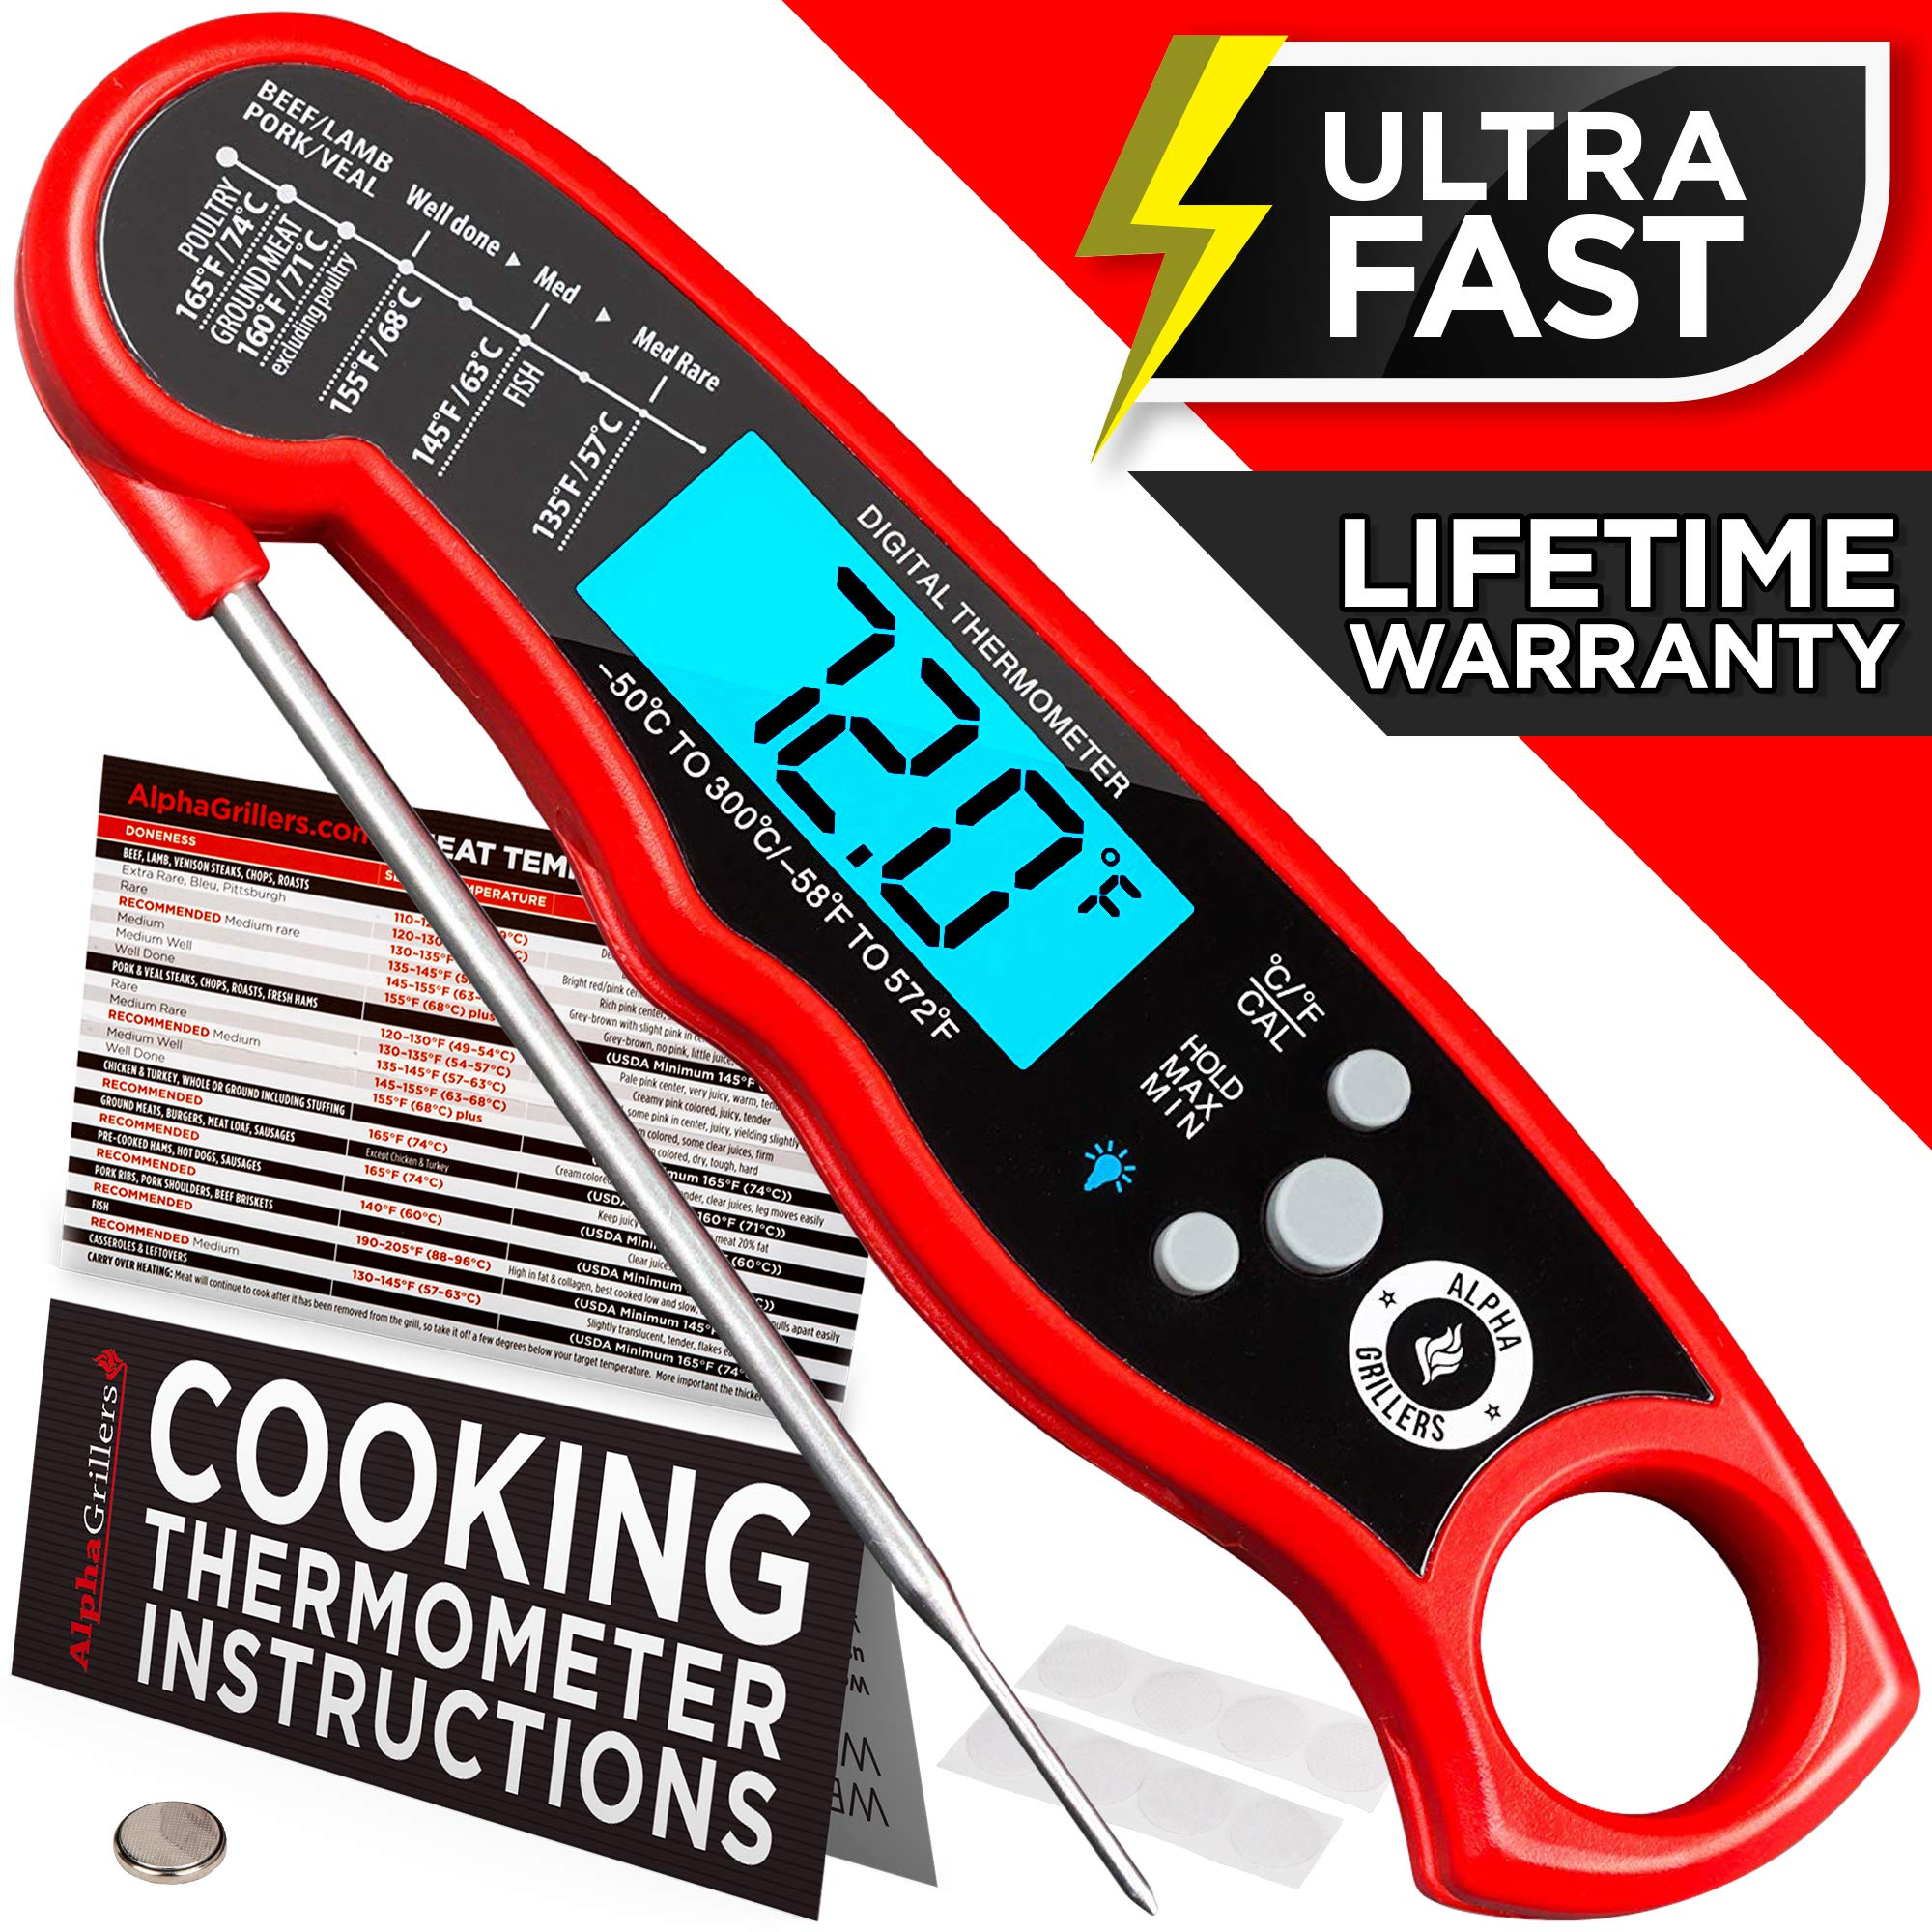 Alpha Grillers Instant Read Meat Thermometer for Grill and Cooking. Upgraded with Backlight and Waterproof Body. Best Ultra Fast Digital Kitchen Probe. Includes Internal BBQ Meat Temperature Guide by Alpha Grillers